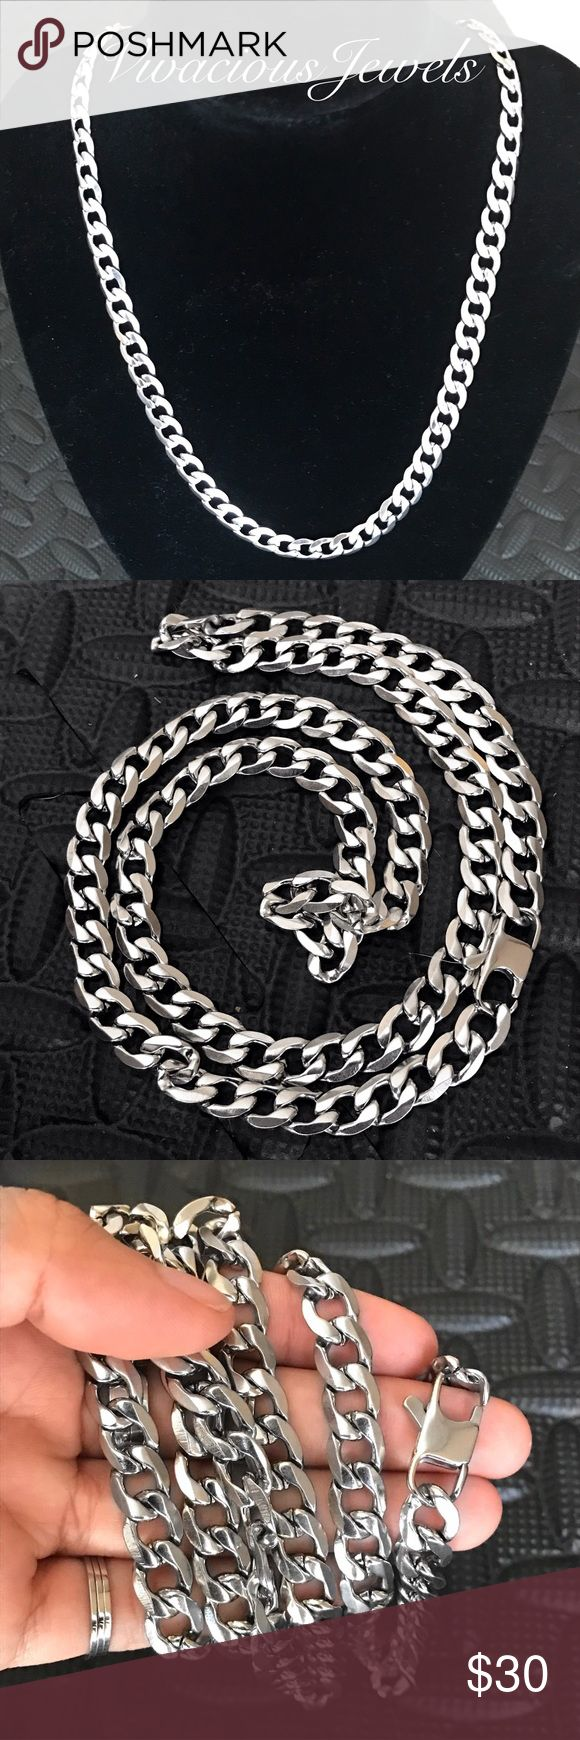 "8MM Stainless Steel Flat Cuban Chain Necklace Brand new Price firm No trades Gift box included  Metal: Stainless steel Color: Silver Width: 8mm  Chain lengths 26"", 28"", 30""  Stainless steel does not rust or turn the skin green Accessories Jewelry"